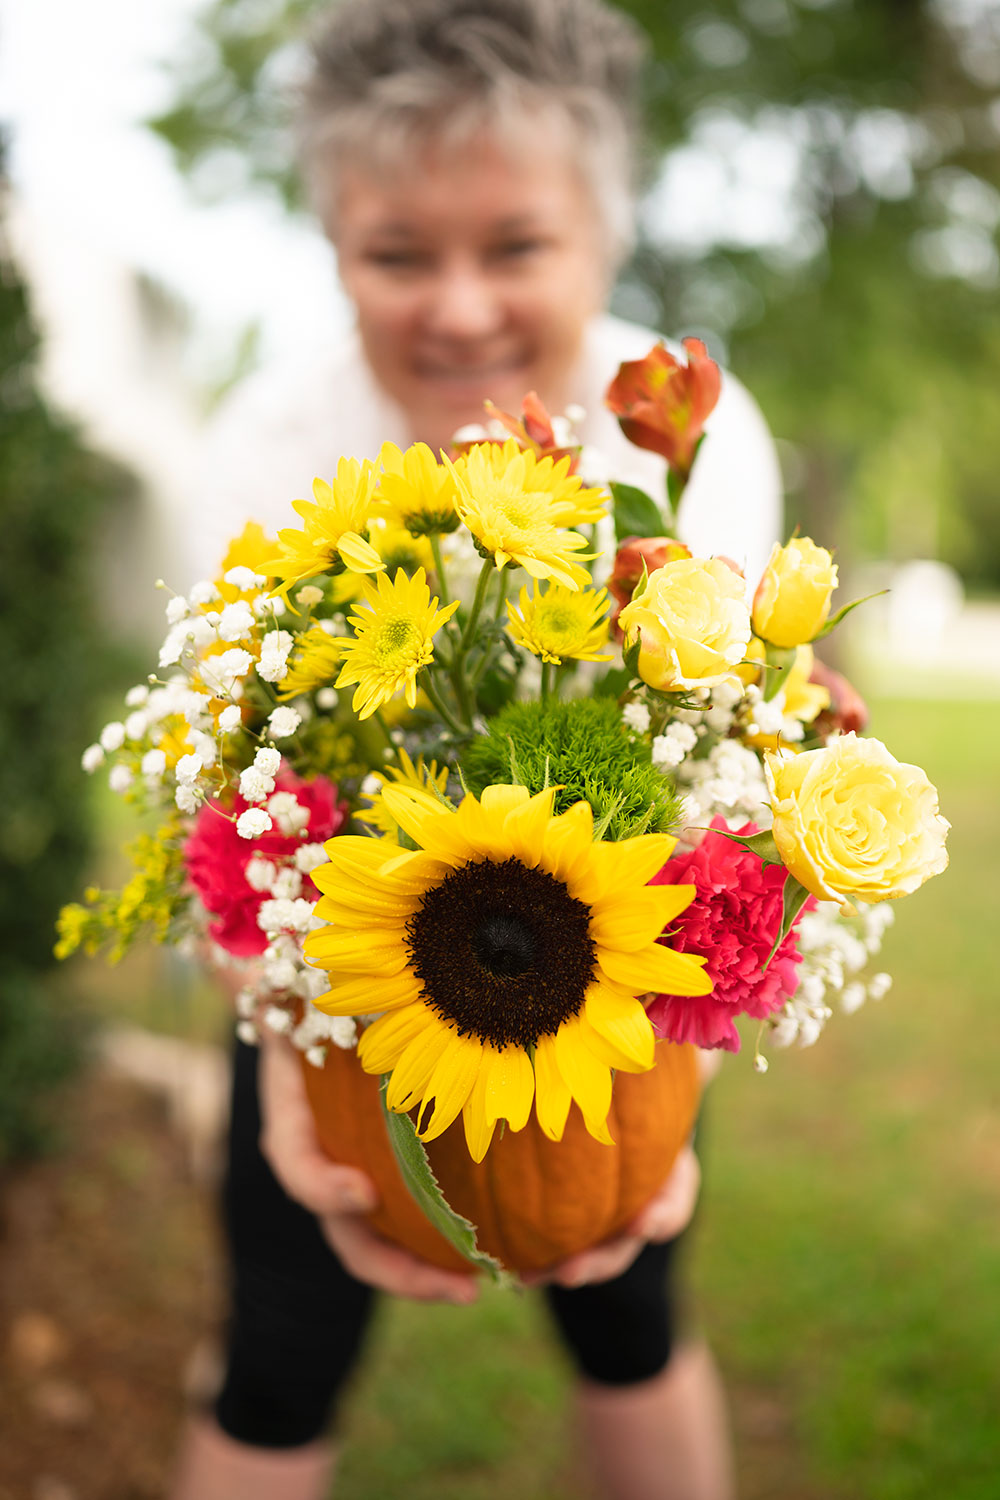 smiling woman holds a large pumpkin filled with fresh cut flowers in front of her